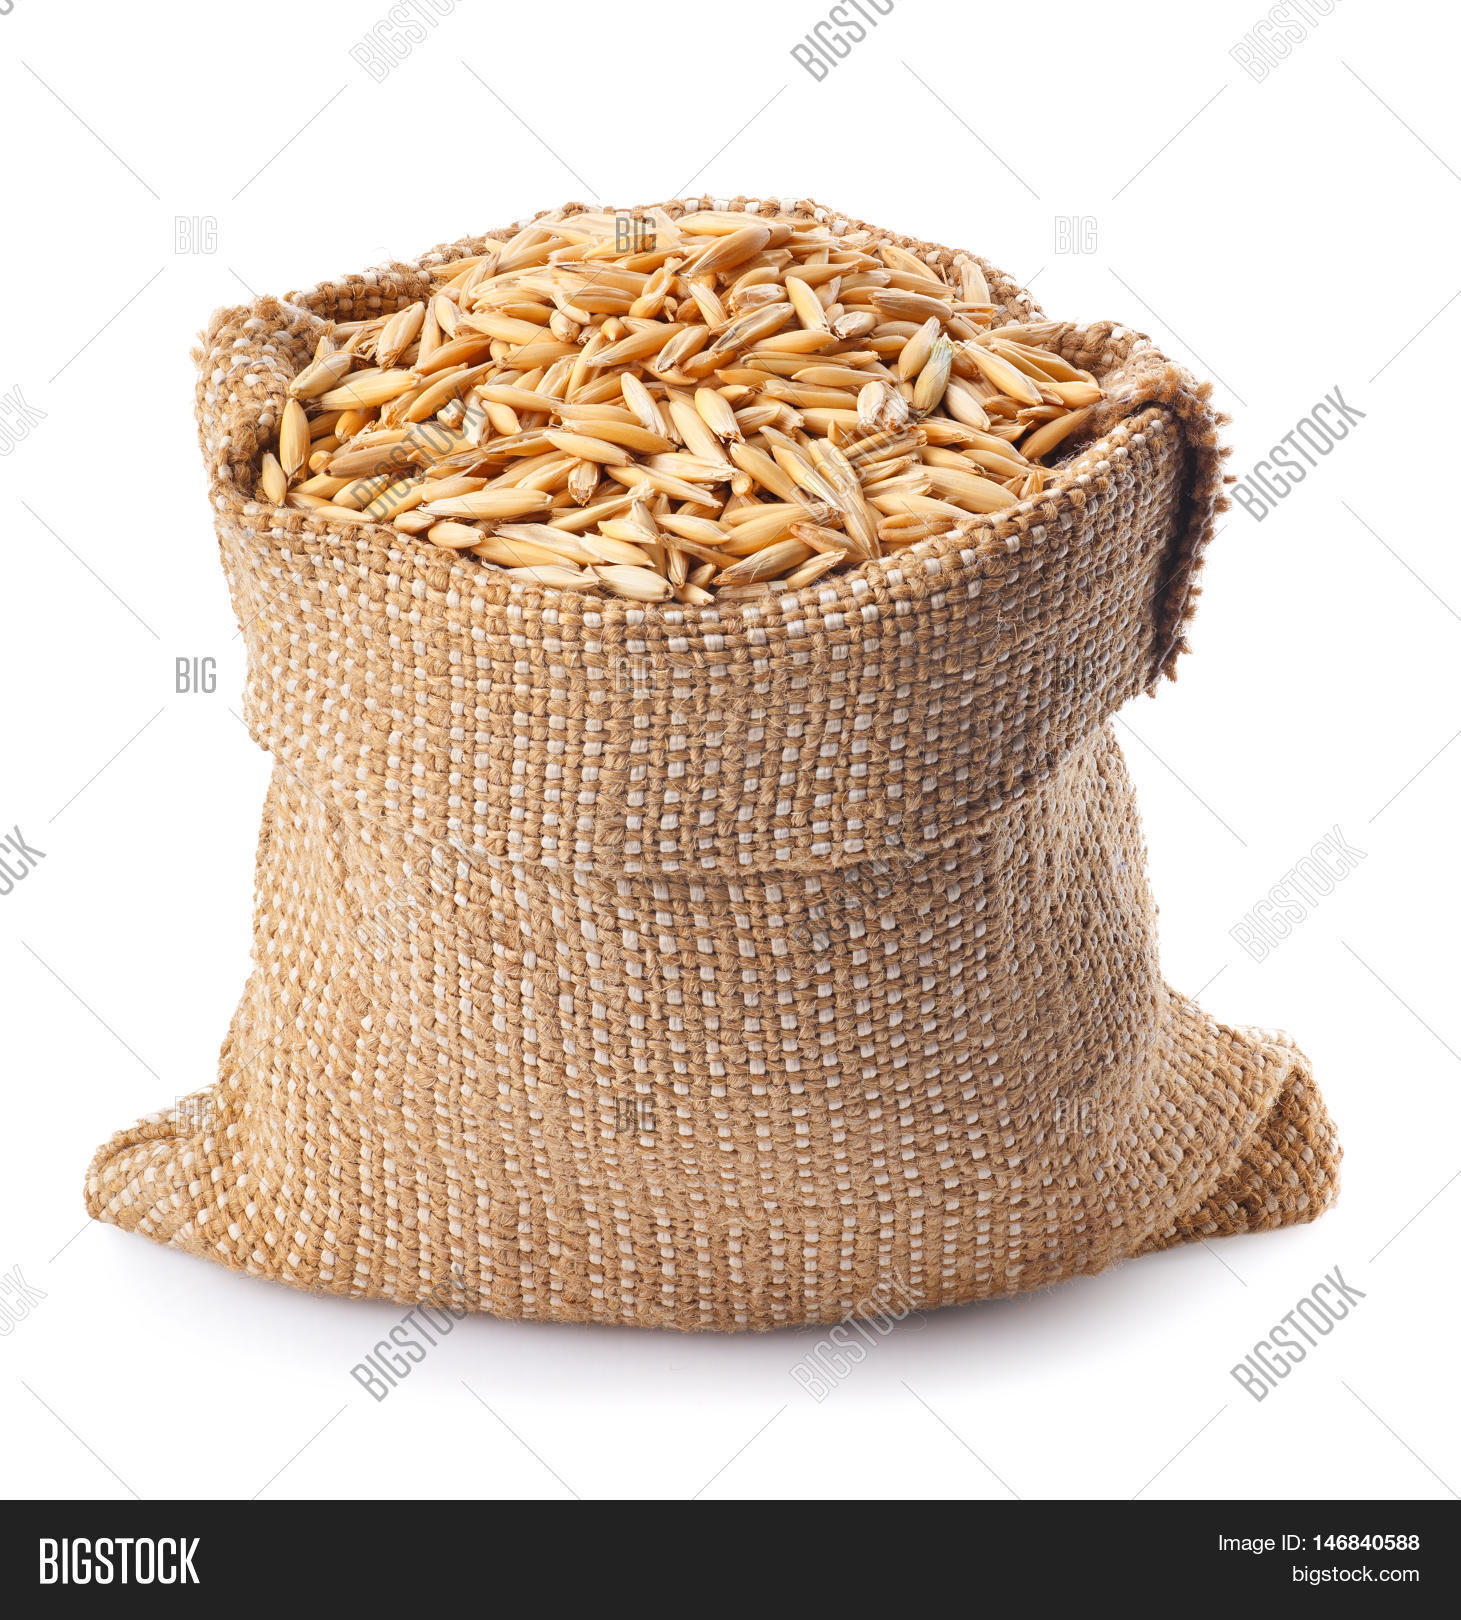 hight resolution of grain oats with husk in burlap bag isolate on white background uncooked oat grains with